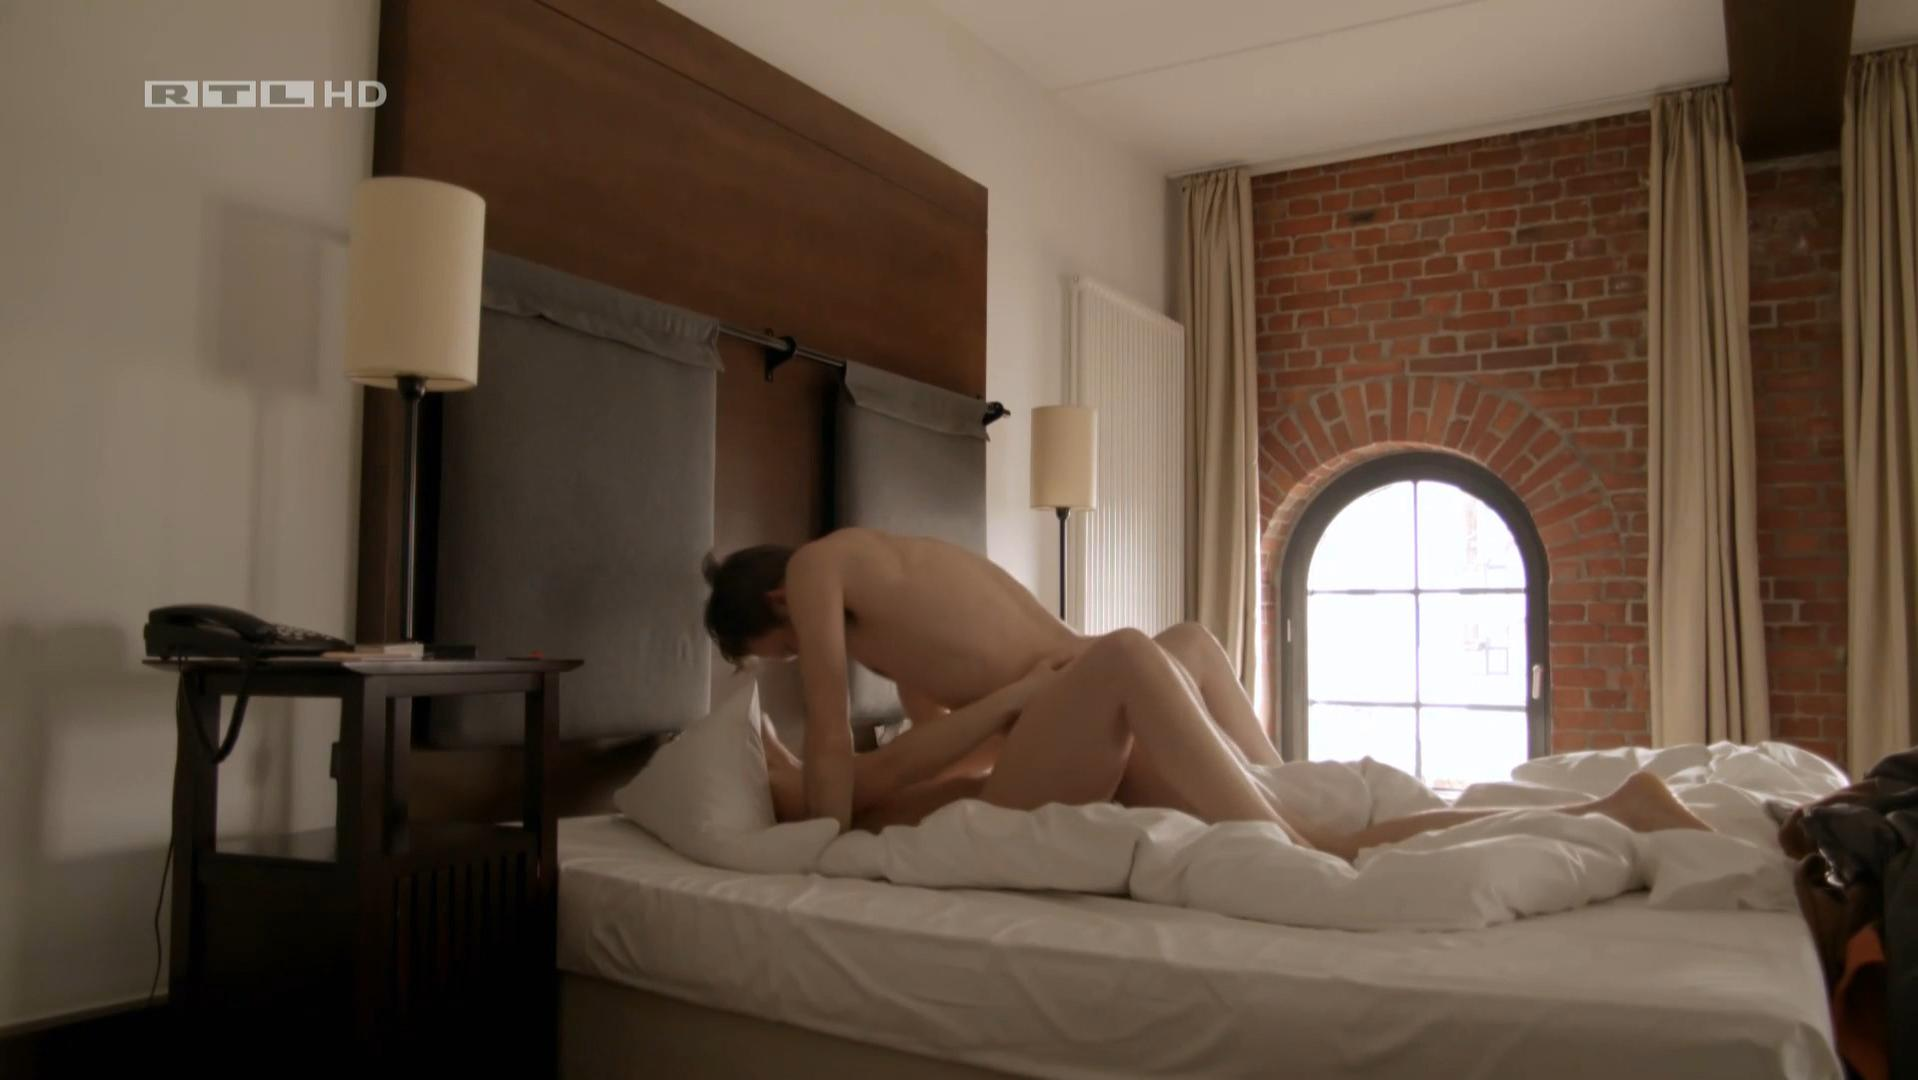 Luise Baehr nude - Manner! Alles auf Anfang s01e05 (2015)